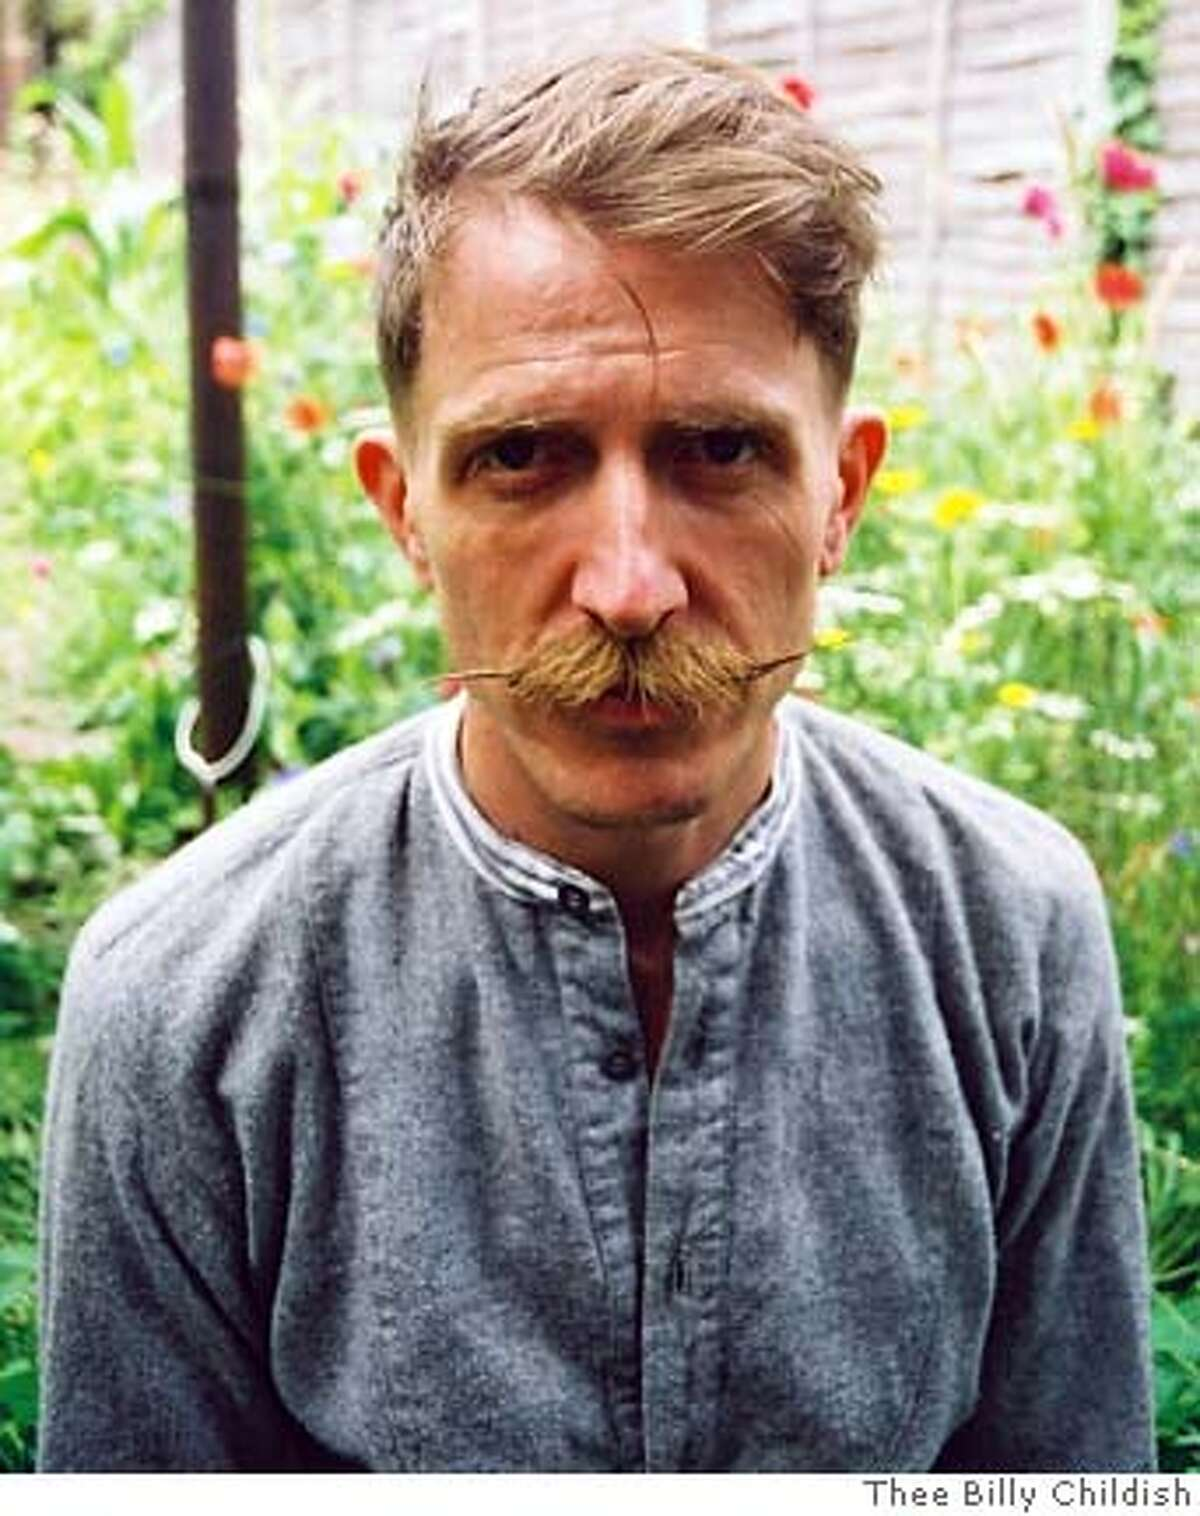 Photo by Billy Childish.